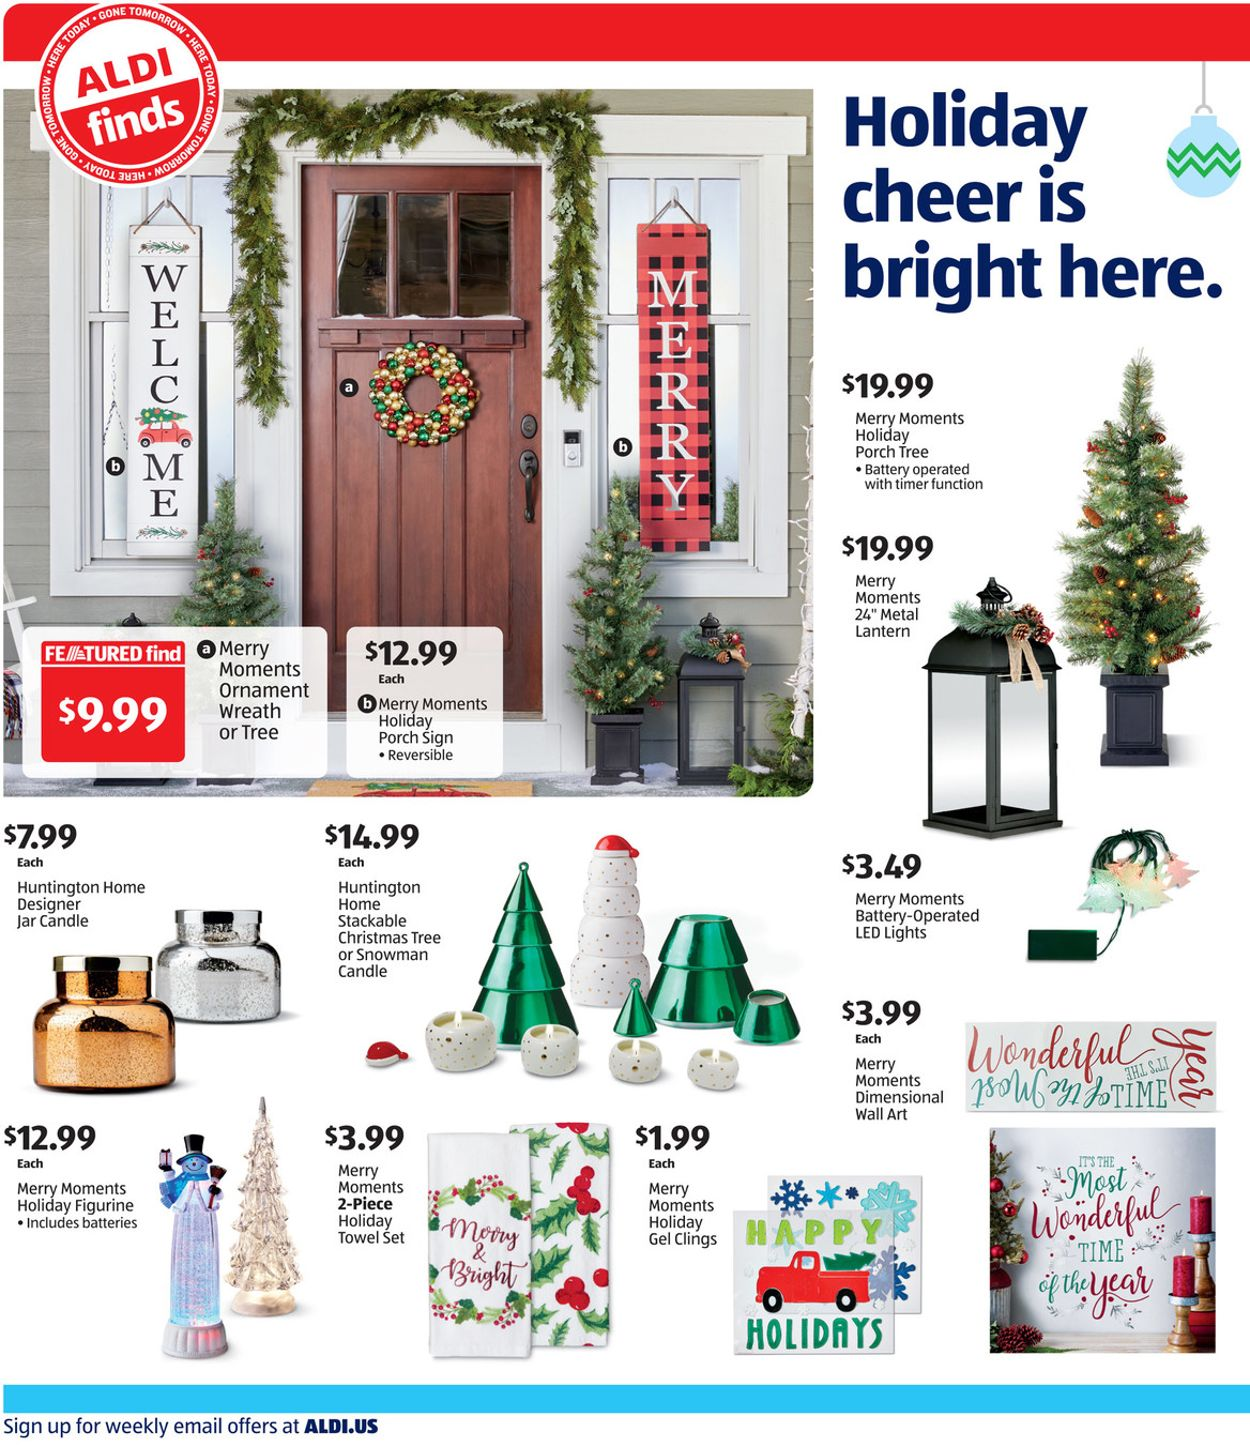 Lowes Led Christmas Lights 11-24-2020 ALDI Holiday 2020 Current weekly ad 11/18   11/24/2020 [2